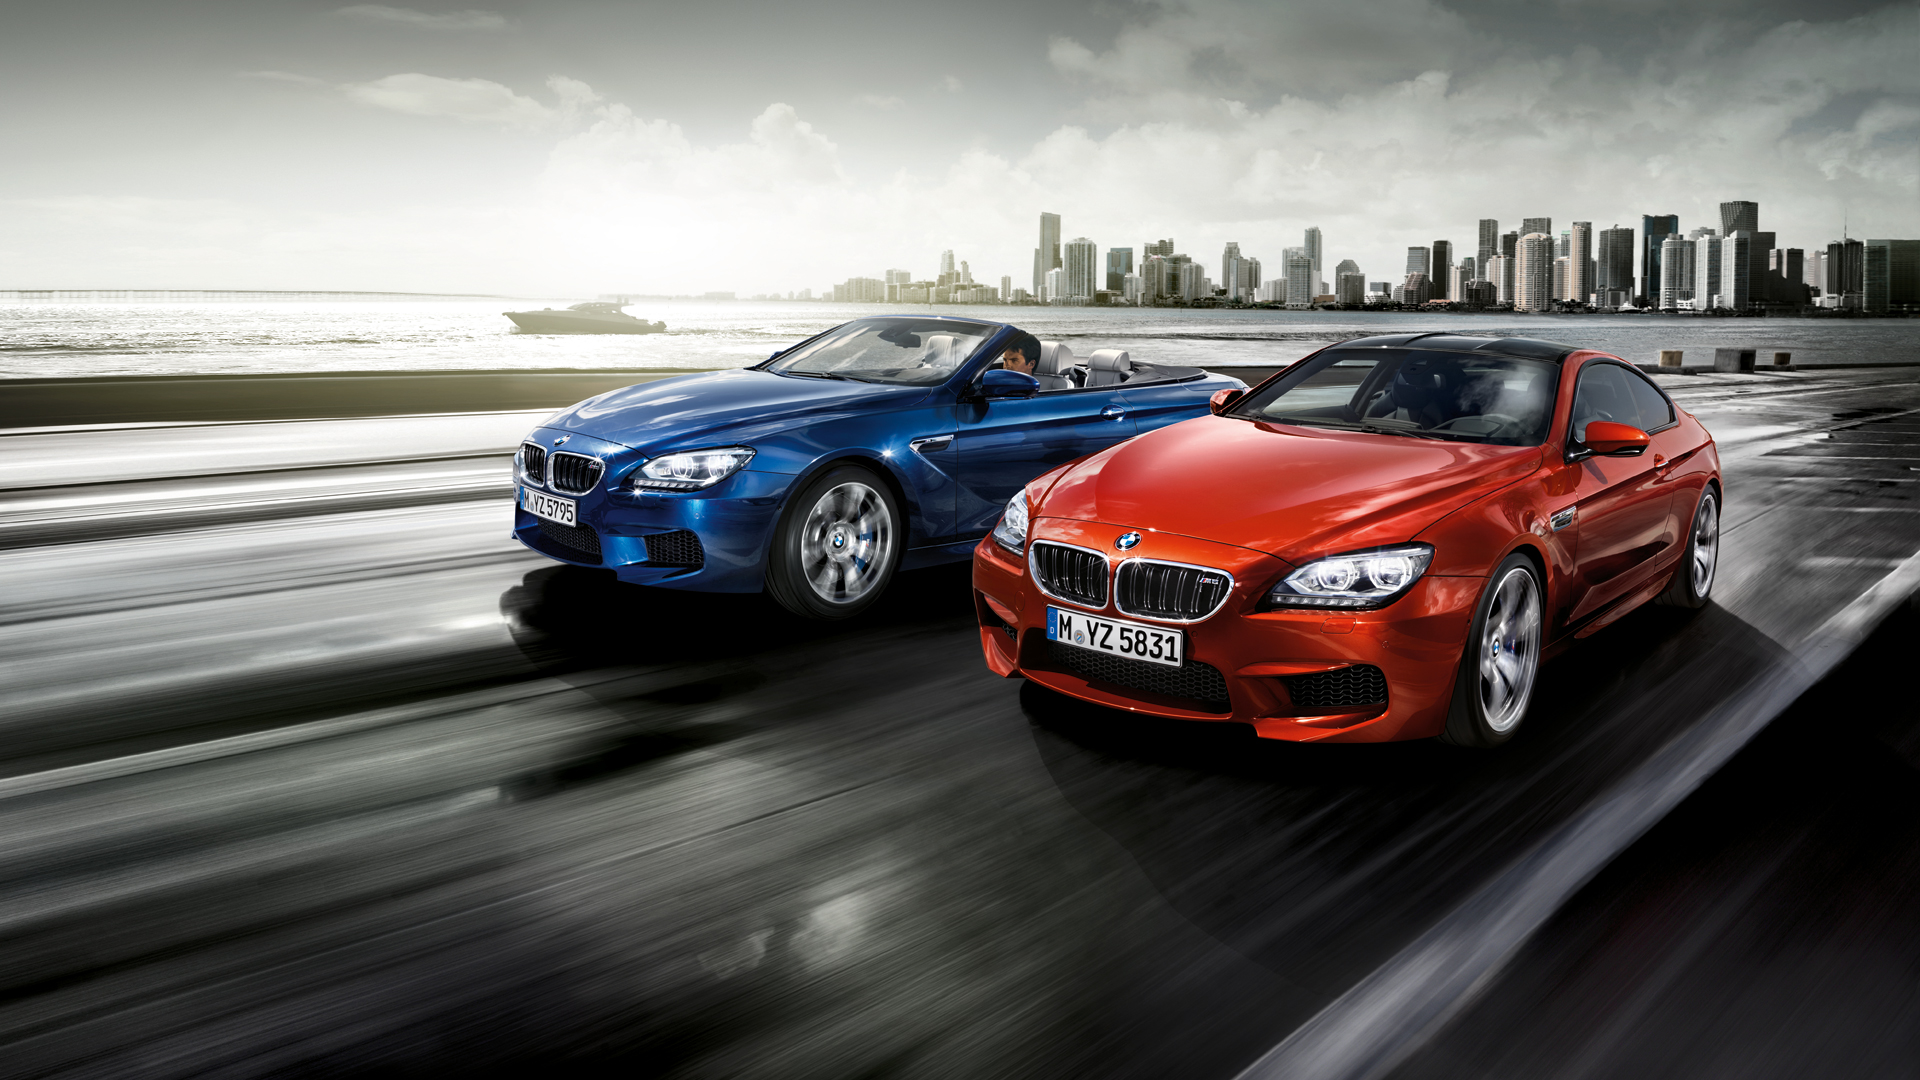 BMW M6 convertible image gallery 6 192011